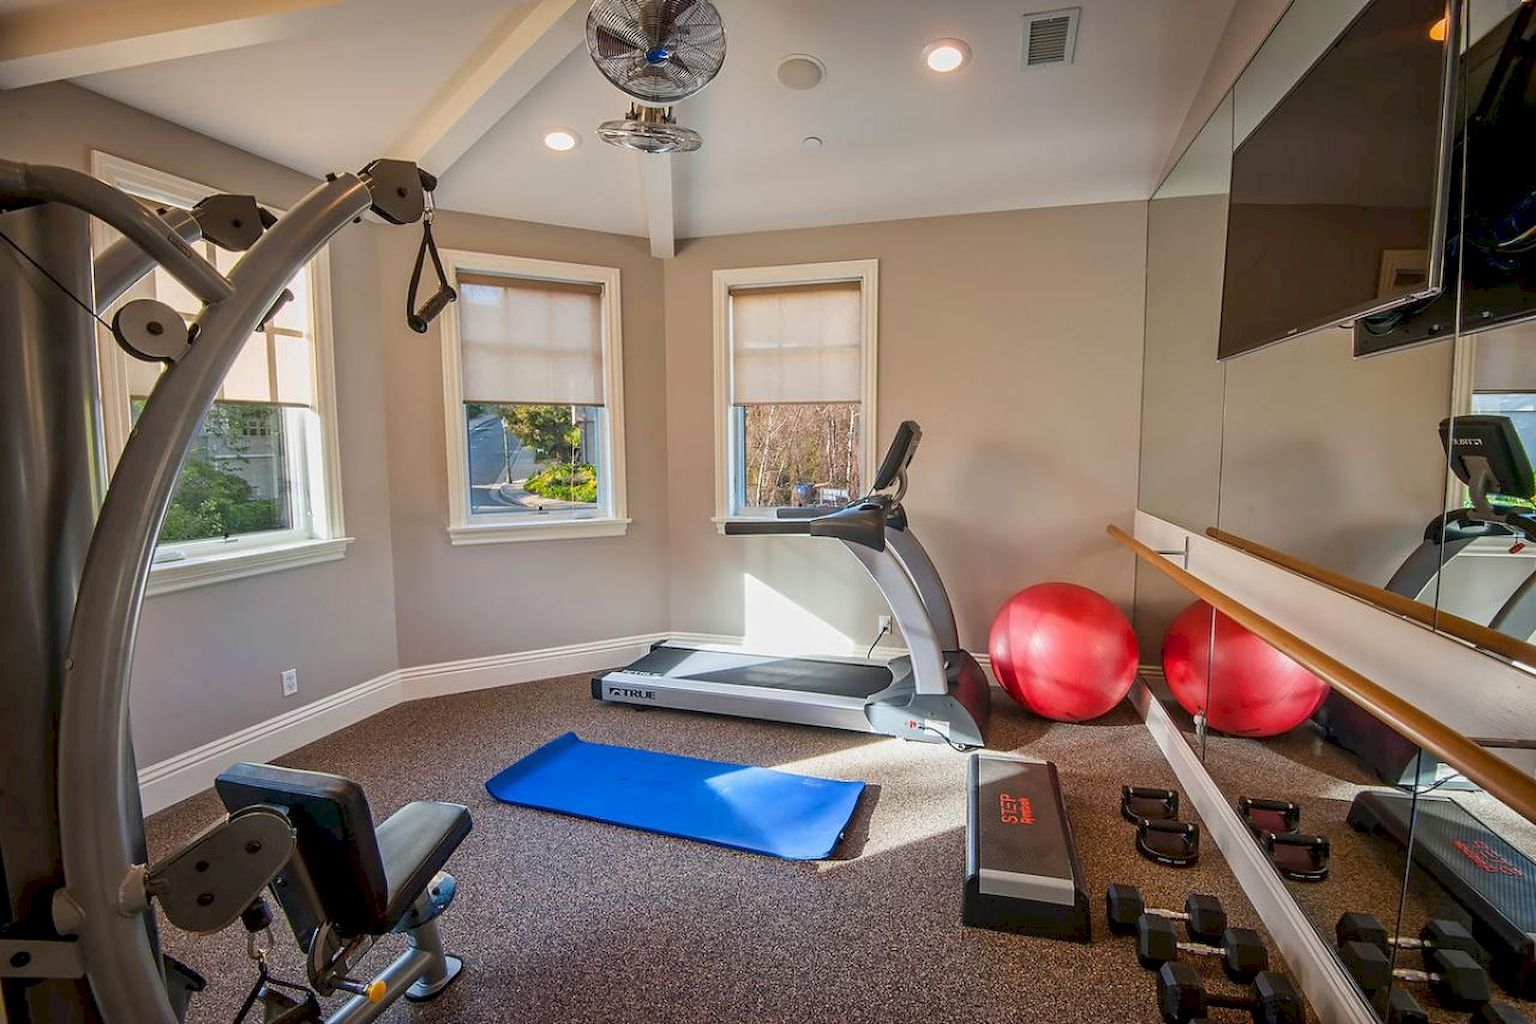 Awesome home gym ideas small spaces interior and furniture